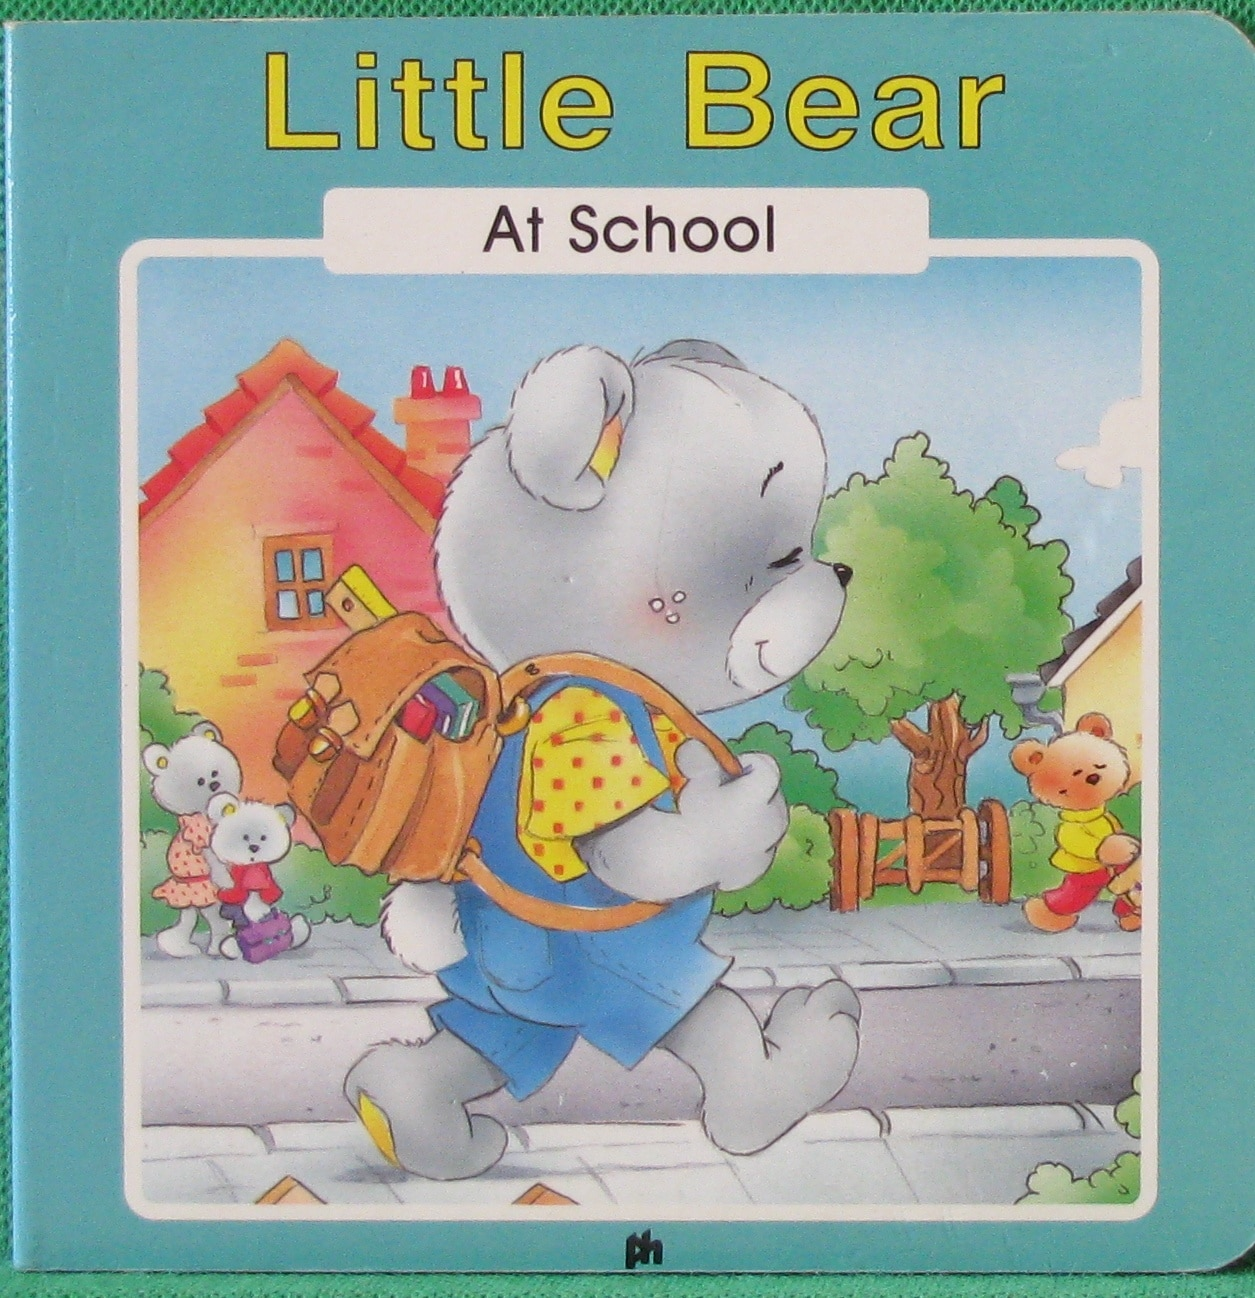 1188042 Little Bear at School books secondhand booksnbobs bookstore malaysia